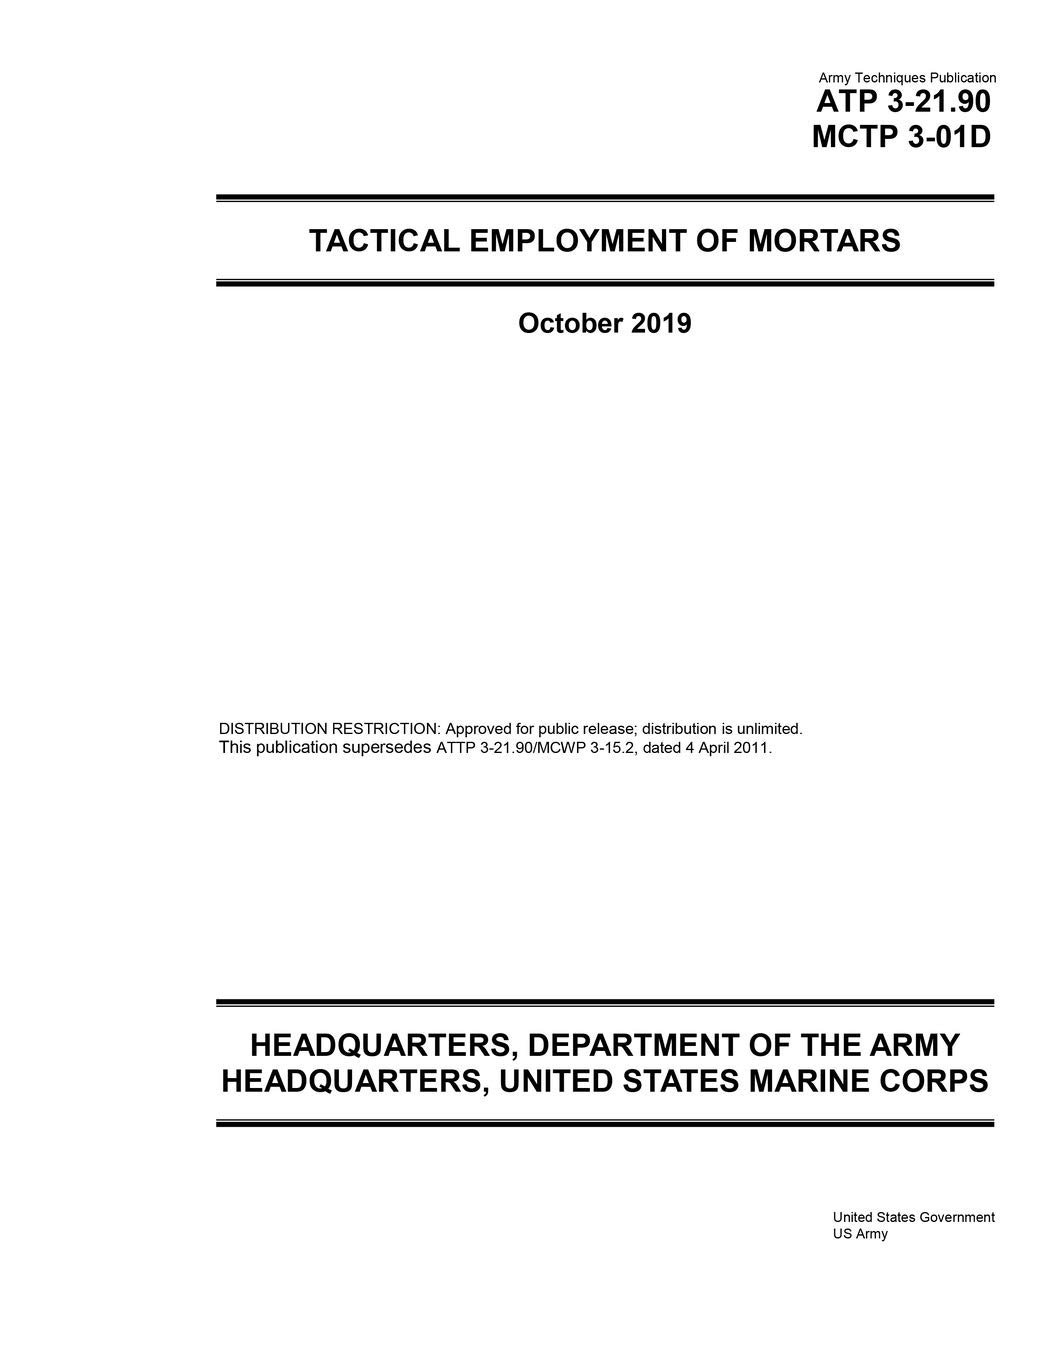 Army Techniques Publication ATP 3-21.90 MCTP 3-01D Tactical Employment of Mortars October 2019